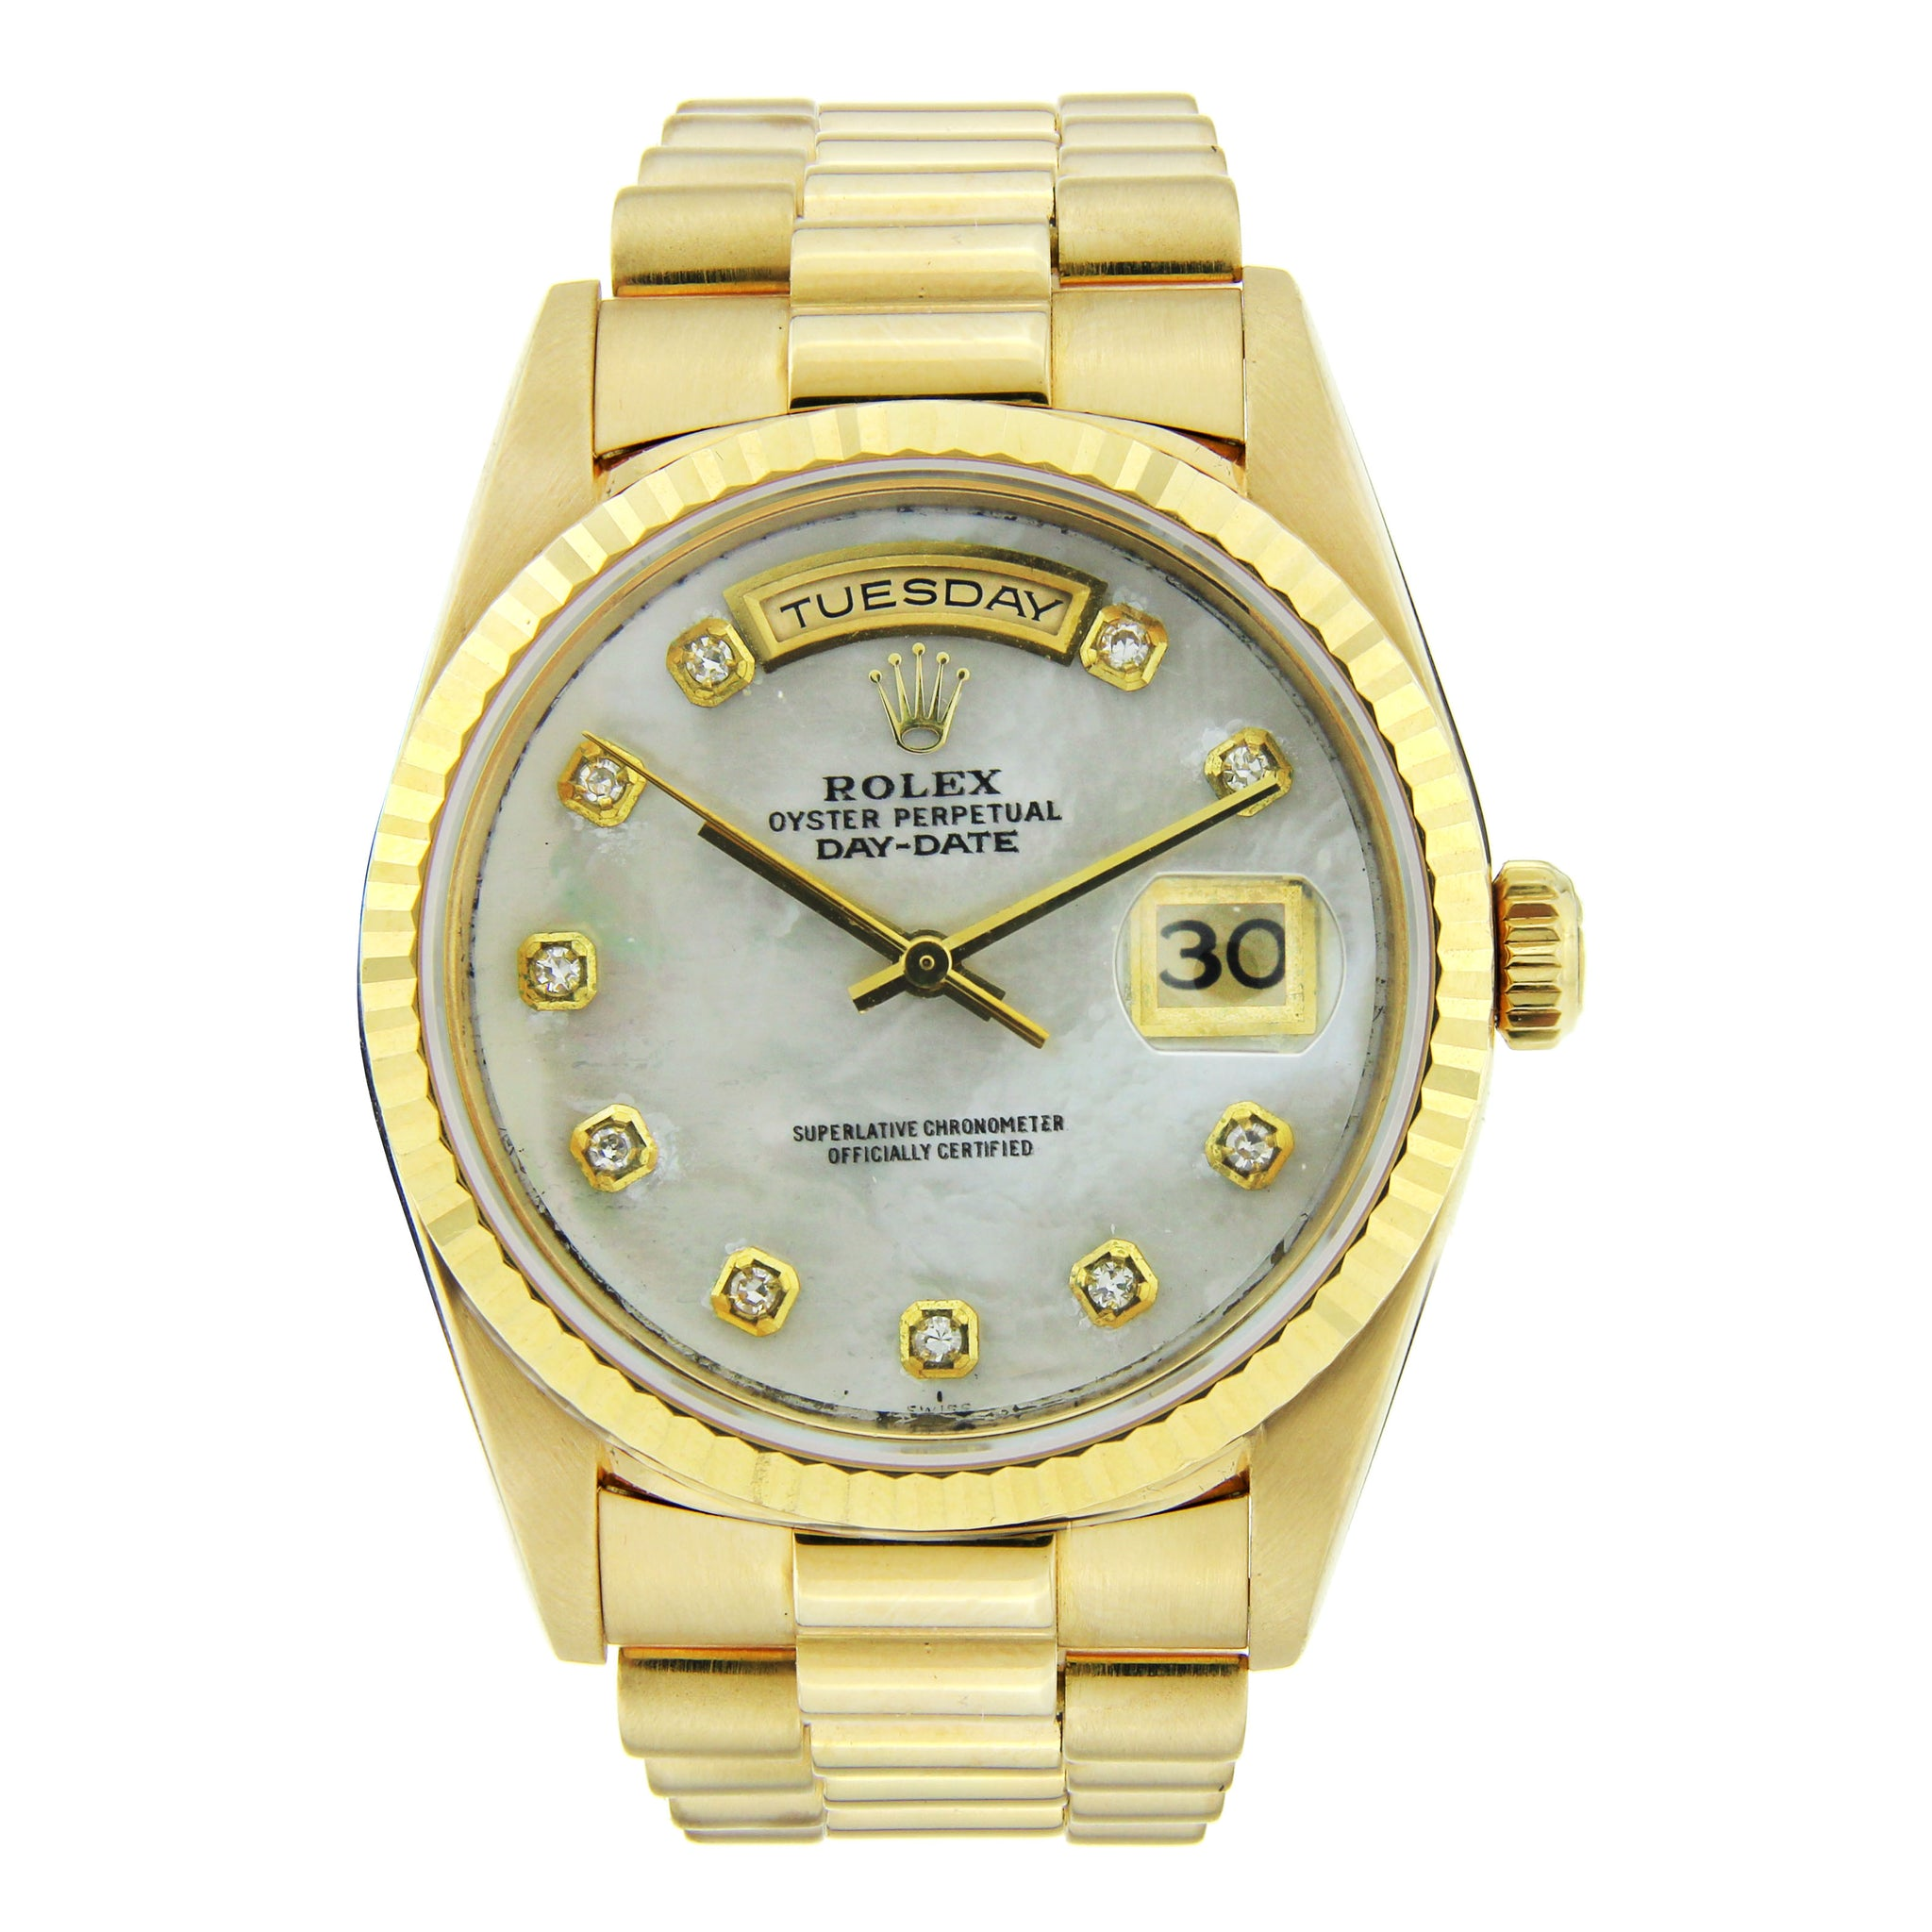 Rolex Day Date 18K Yellow Gold with Diamond Hour Markers 36mm